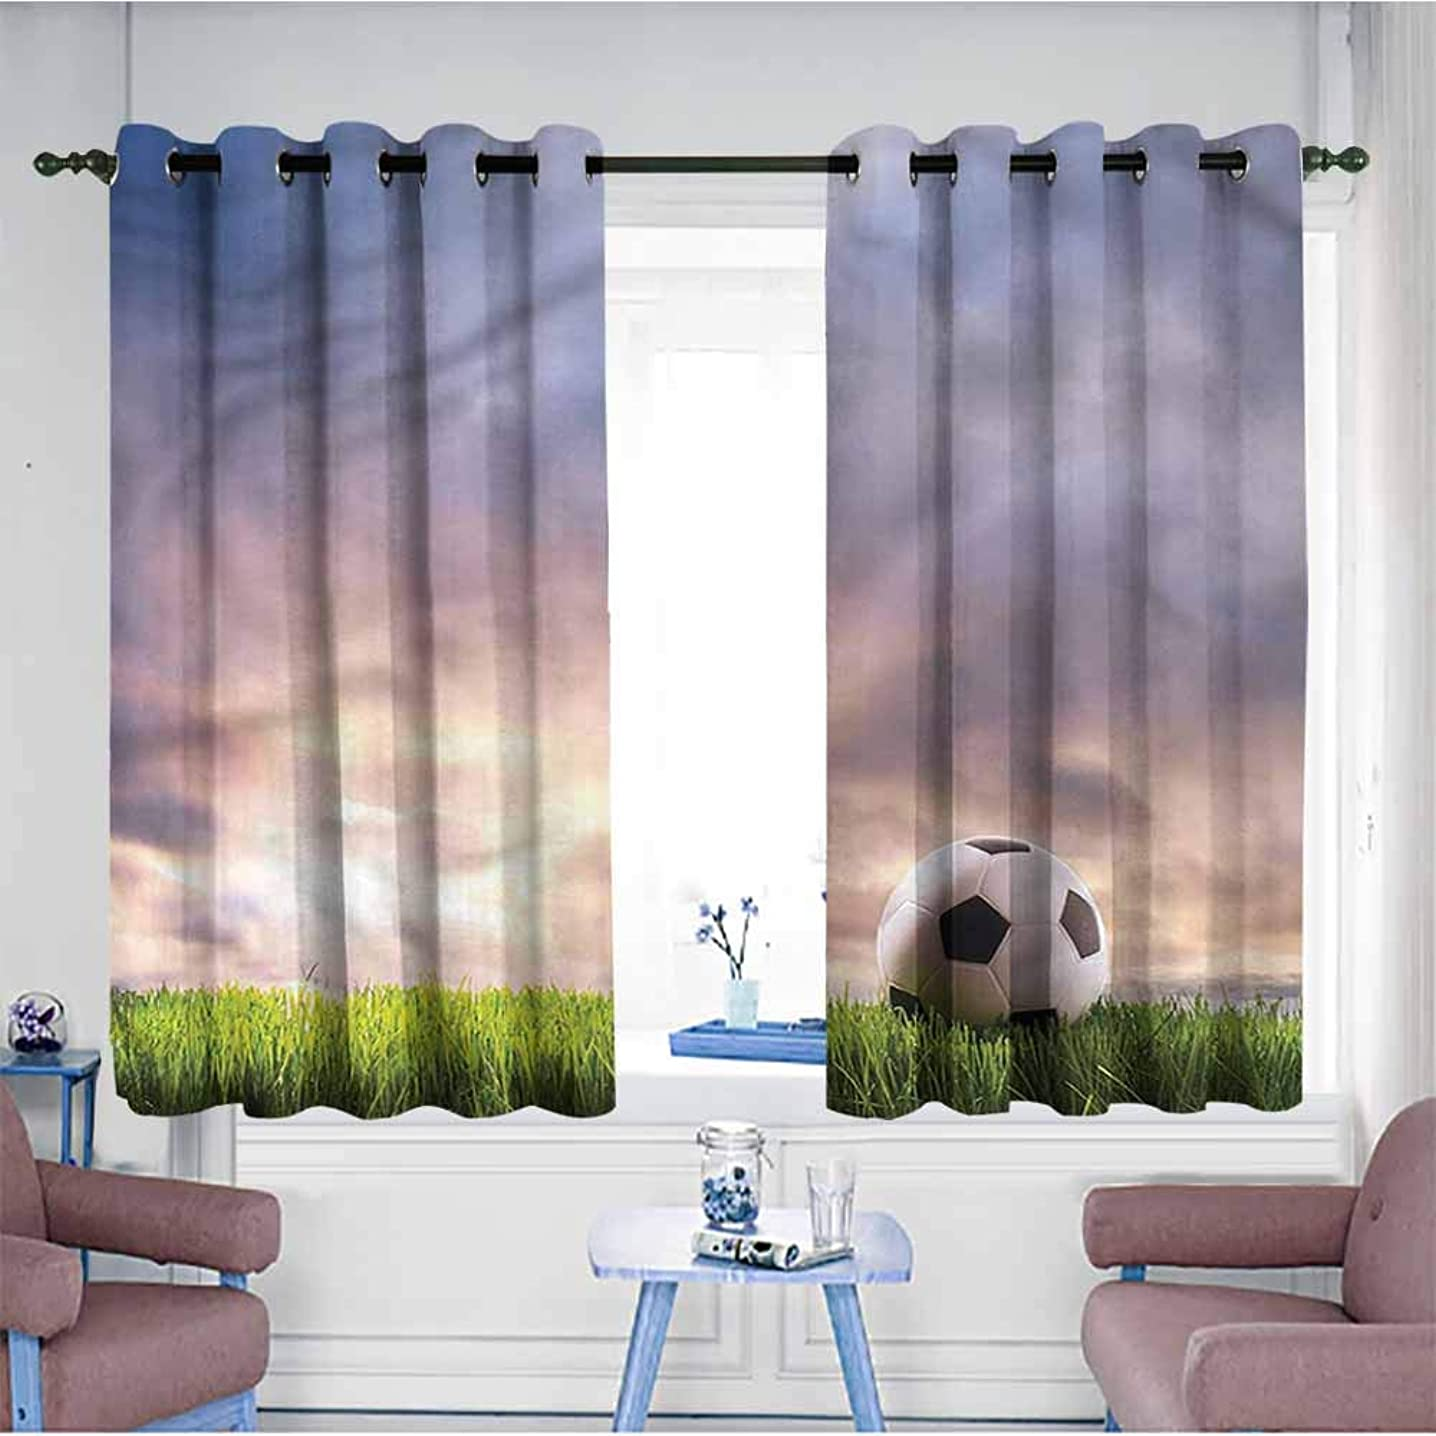 Kids Curtains,Sports Soccer Ball on Green Grass,for Bedroom Grommet Drapes,W55x63L